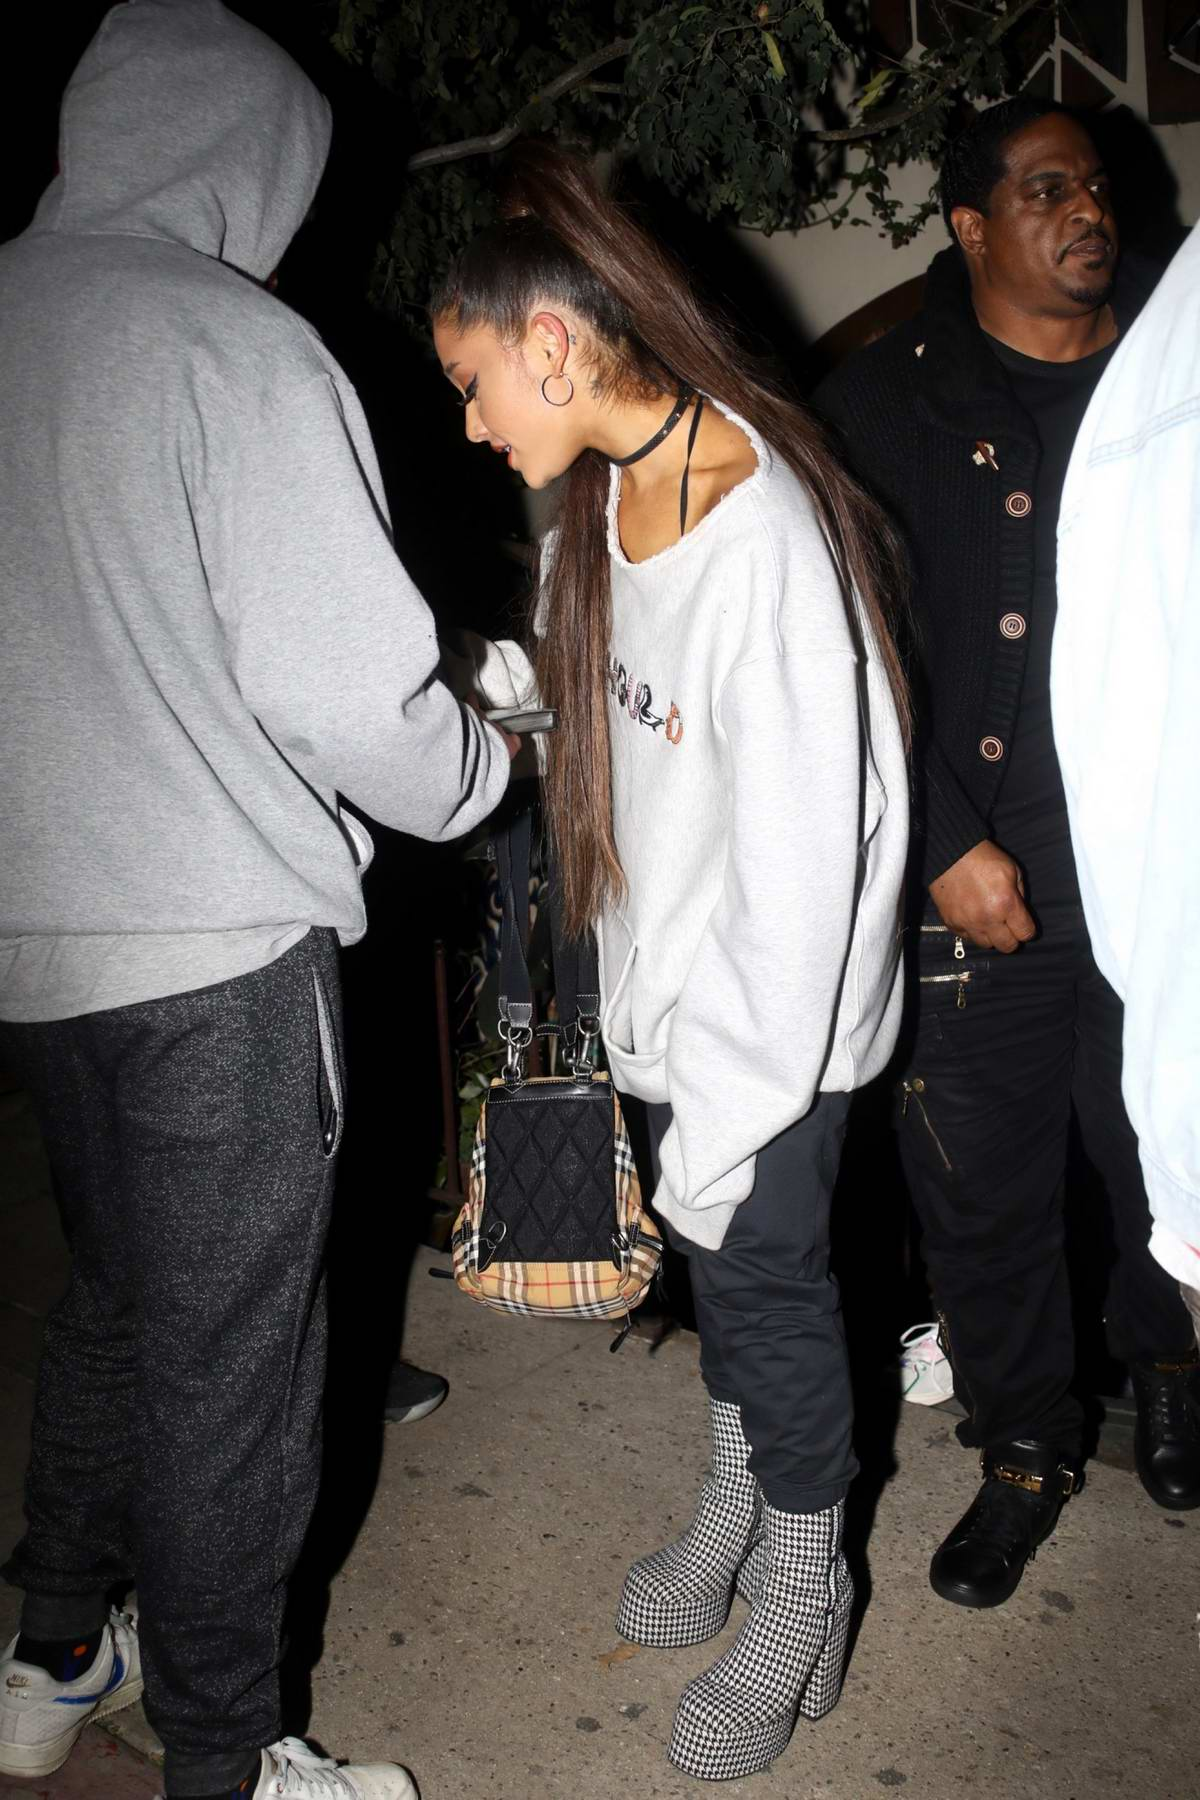 Ariana Grande tries to cover her face as she leaves Pace Restaurant in Los Angeles